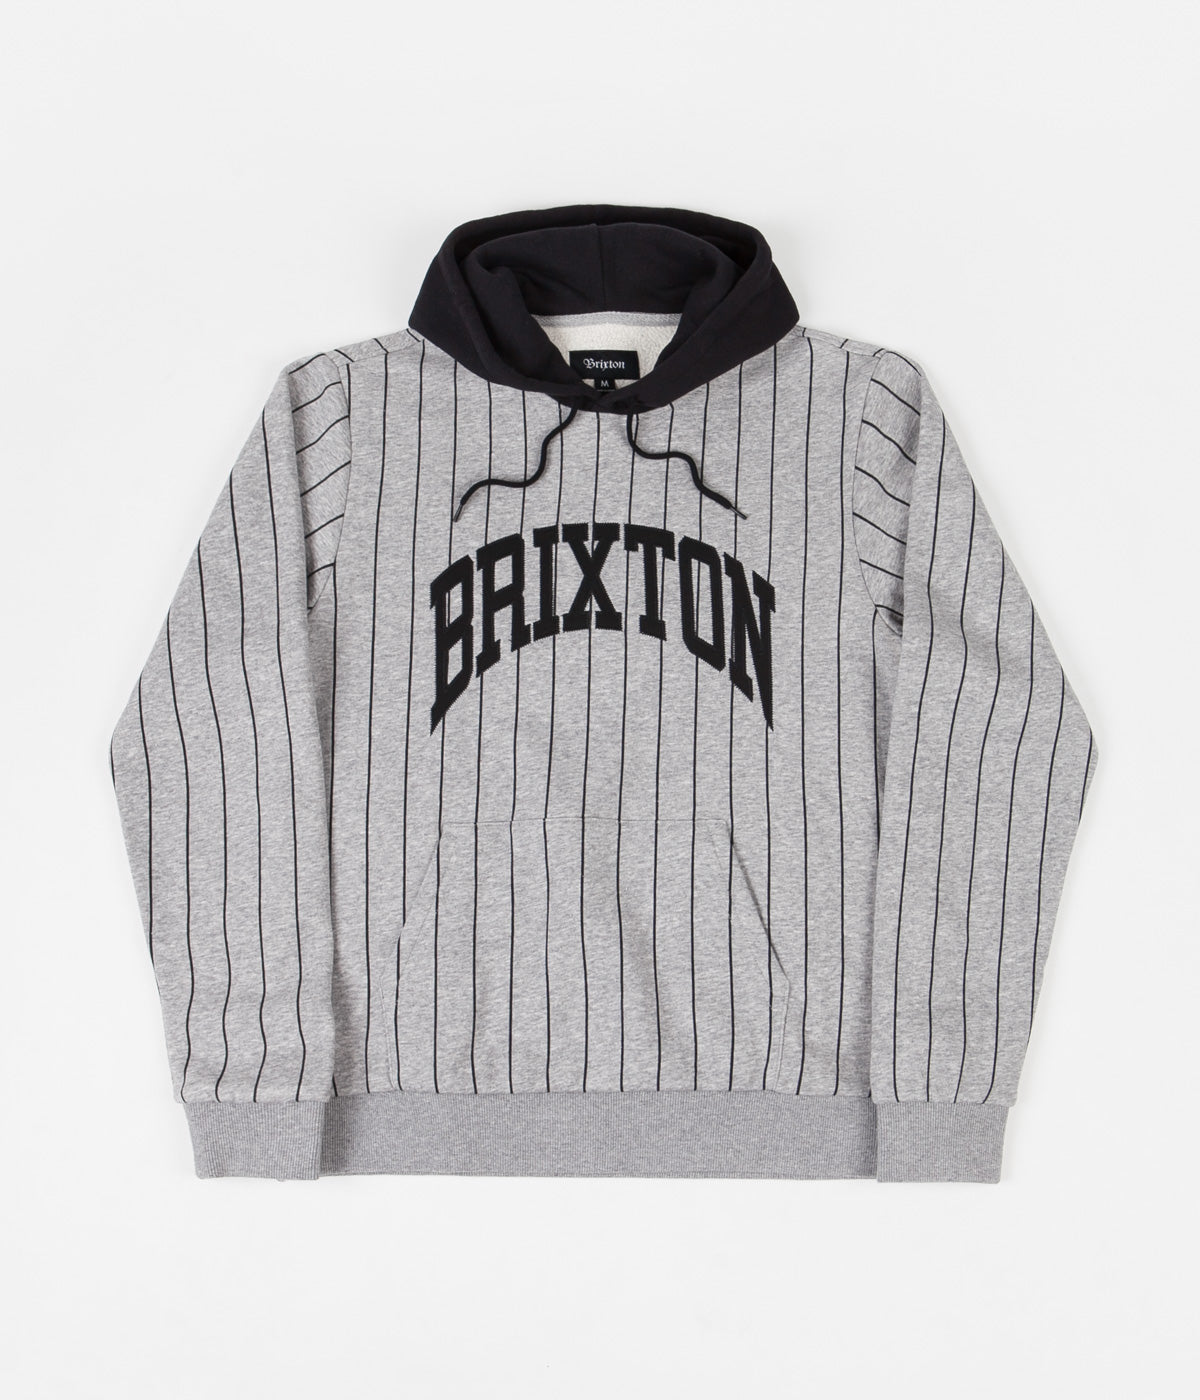 Brixton University International Hoodie - Heather Grey